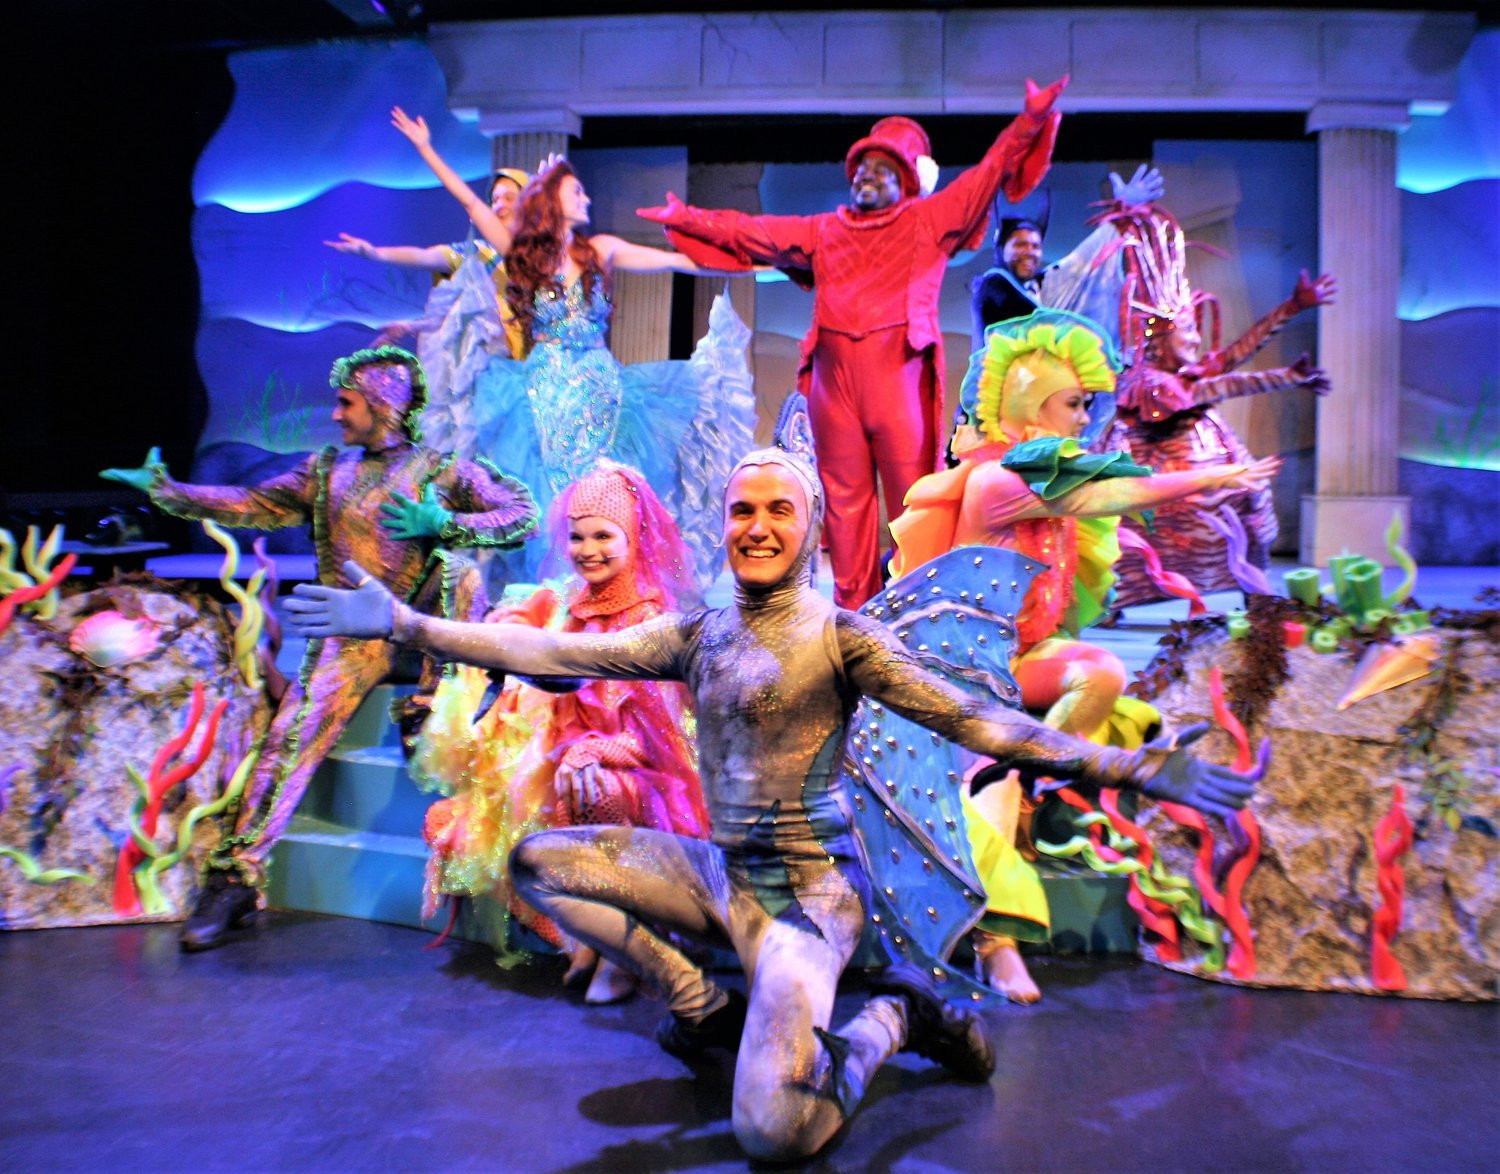 """The Little Mermaid"" is showing at Alhambra Theatre & Dining through July 28."